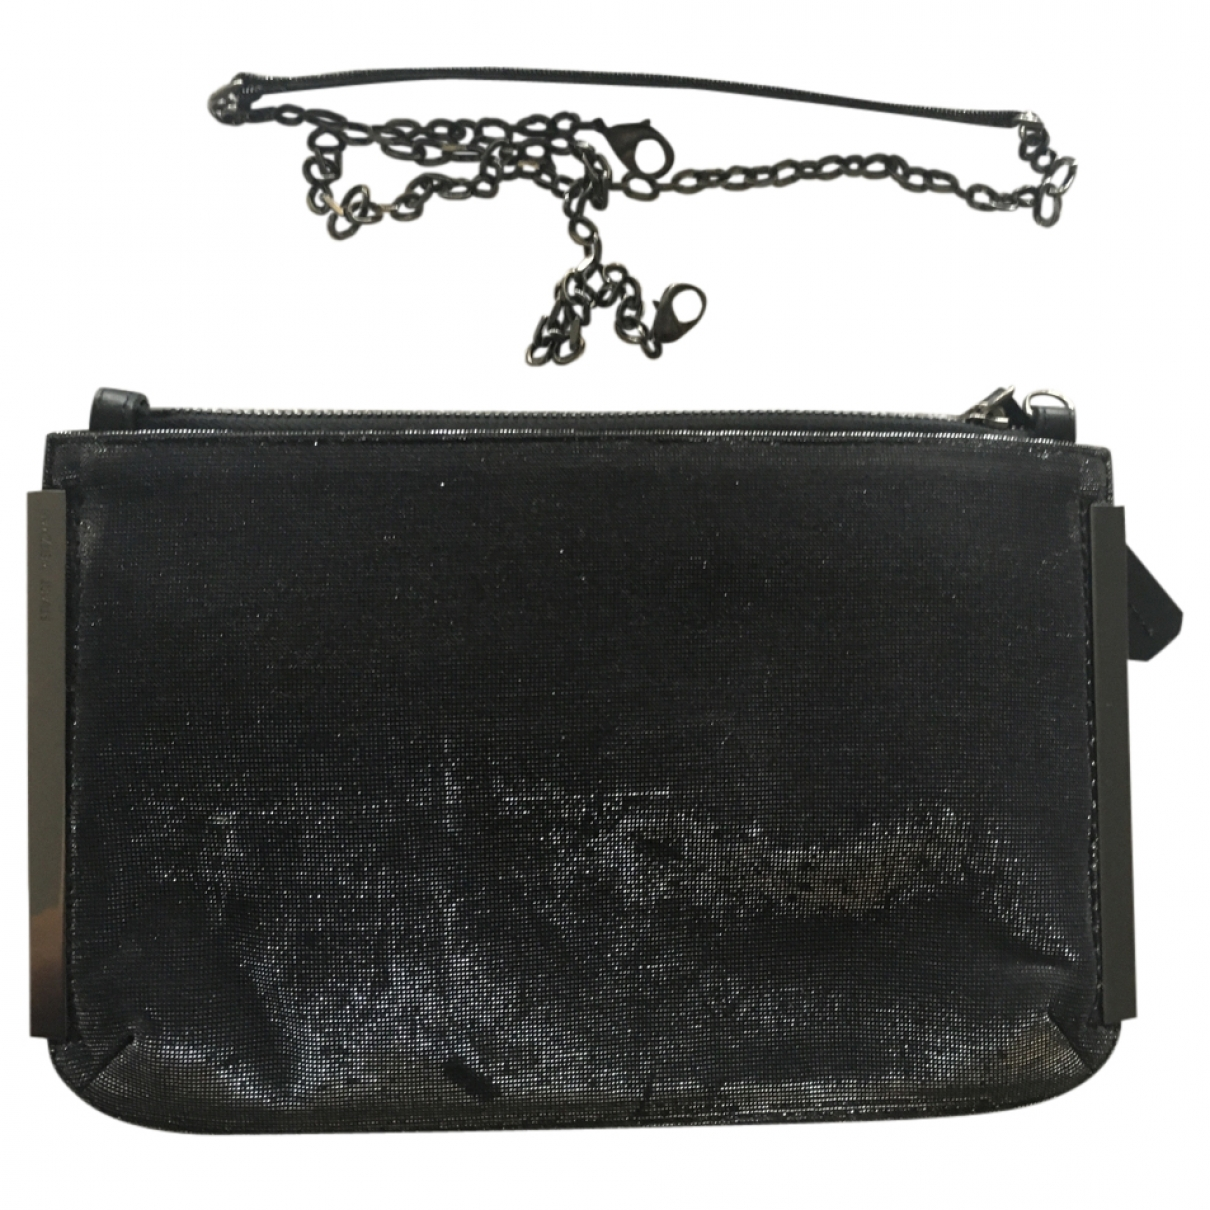 Stuart Weitzman \N Black Glitter Clutch bag for Women \N